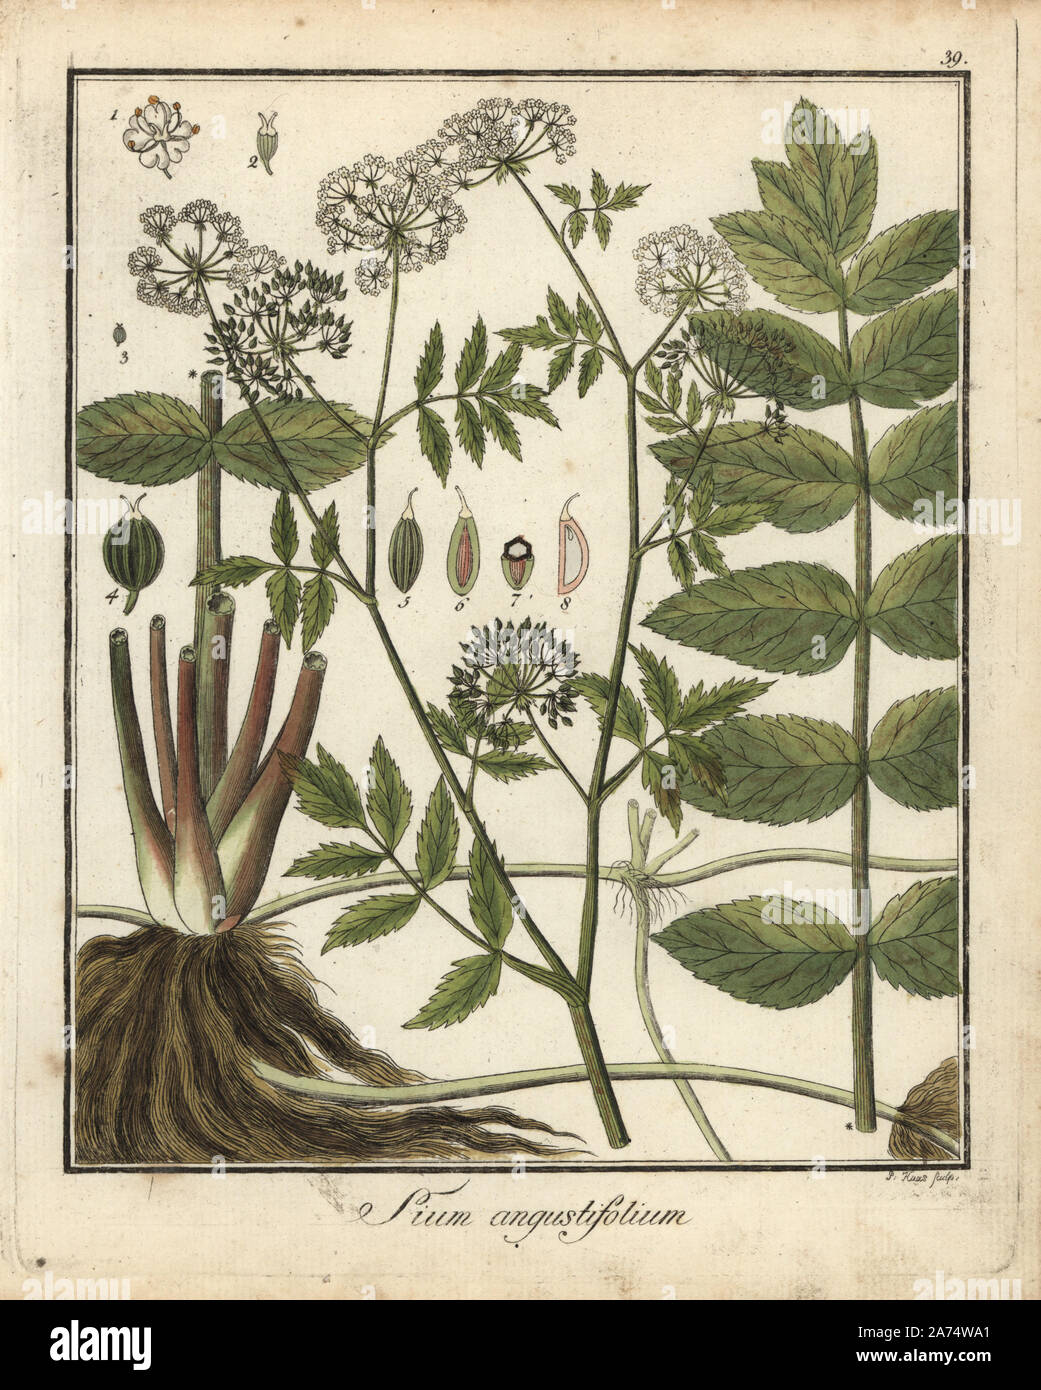 Cutleaf water parsnip, Berula erecta. Handcoloured copperplate engraving by P. Haas from Dr. Friedrich Gottlob Hayne's Medical Botany, Berlin, 1822. Hayne (1763-1832) was a German botanist, apothecary and professor of pharmaceutical botany at Berlin University. Stock Photo